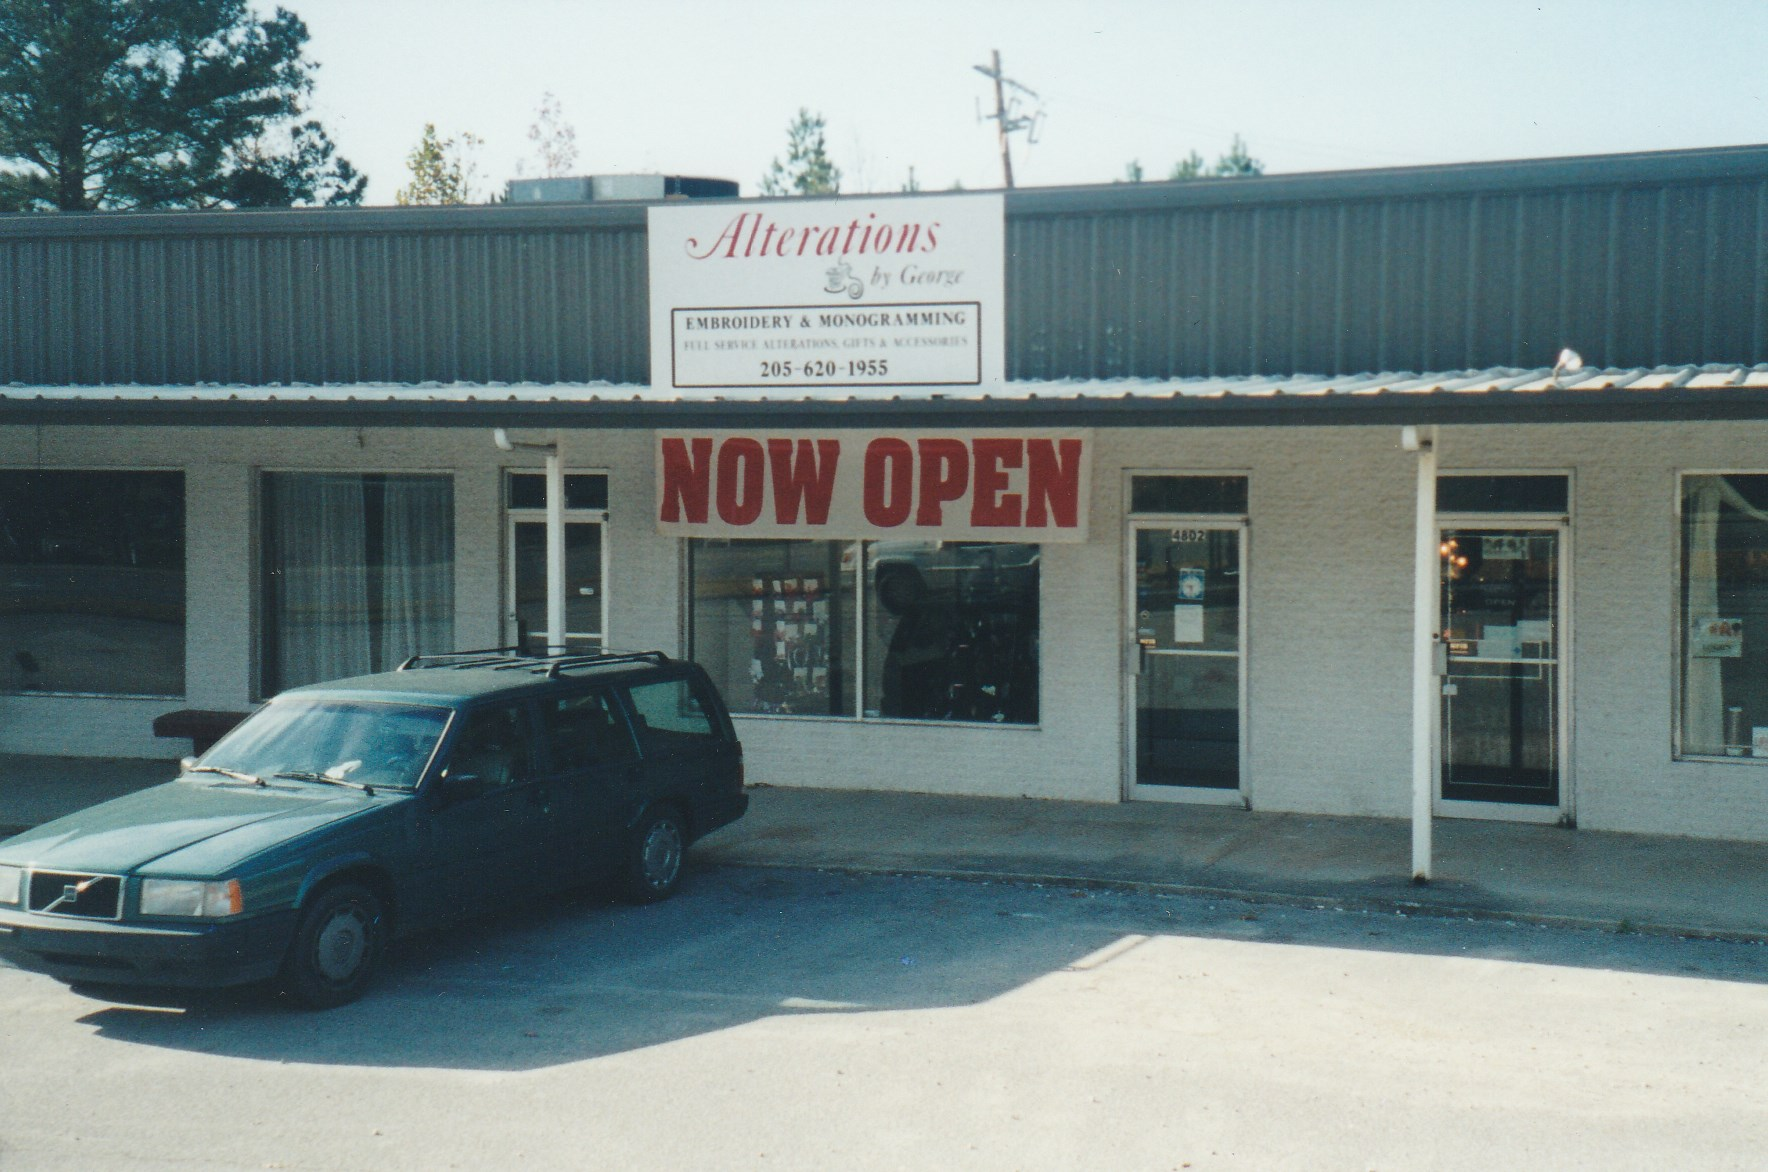 By George (Alterations, By George) at its original location in 2002.